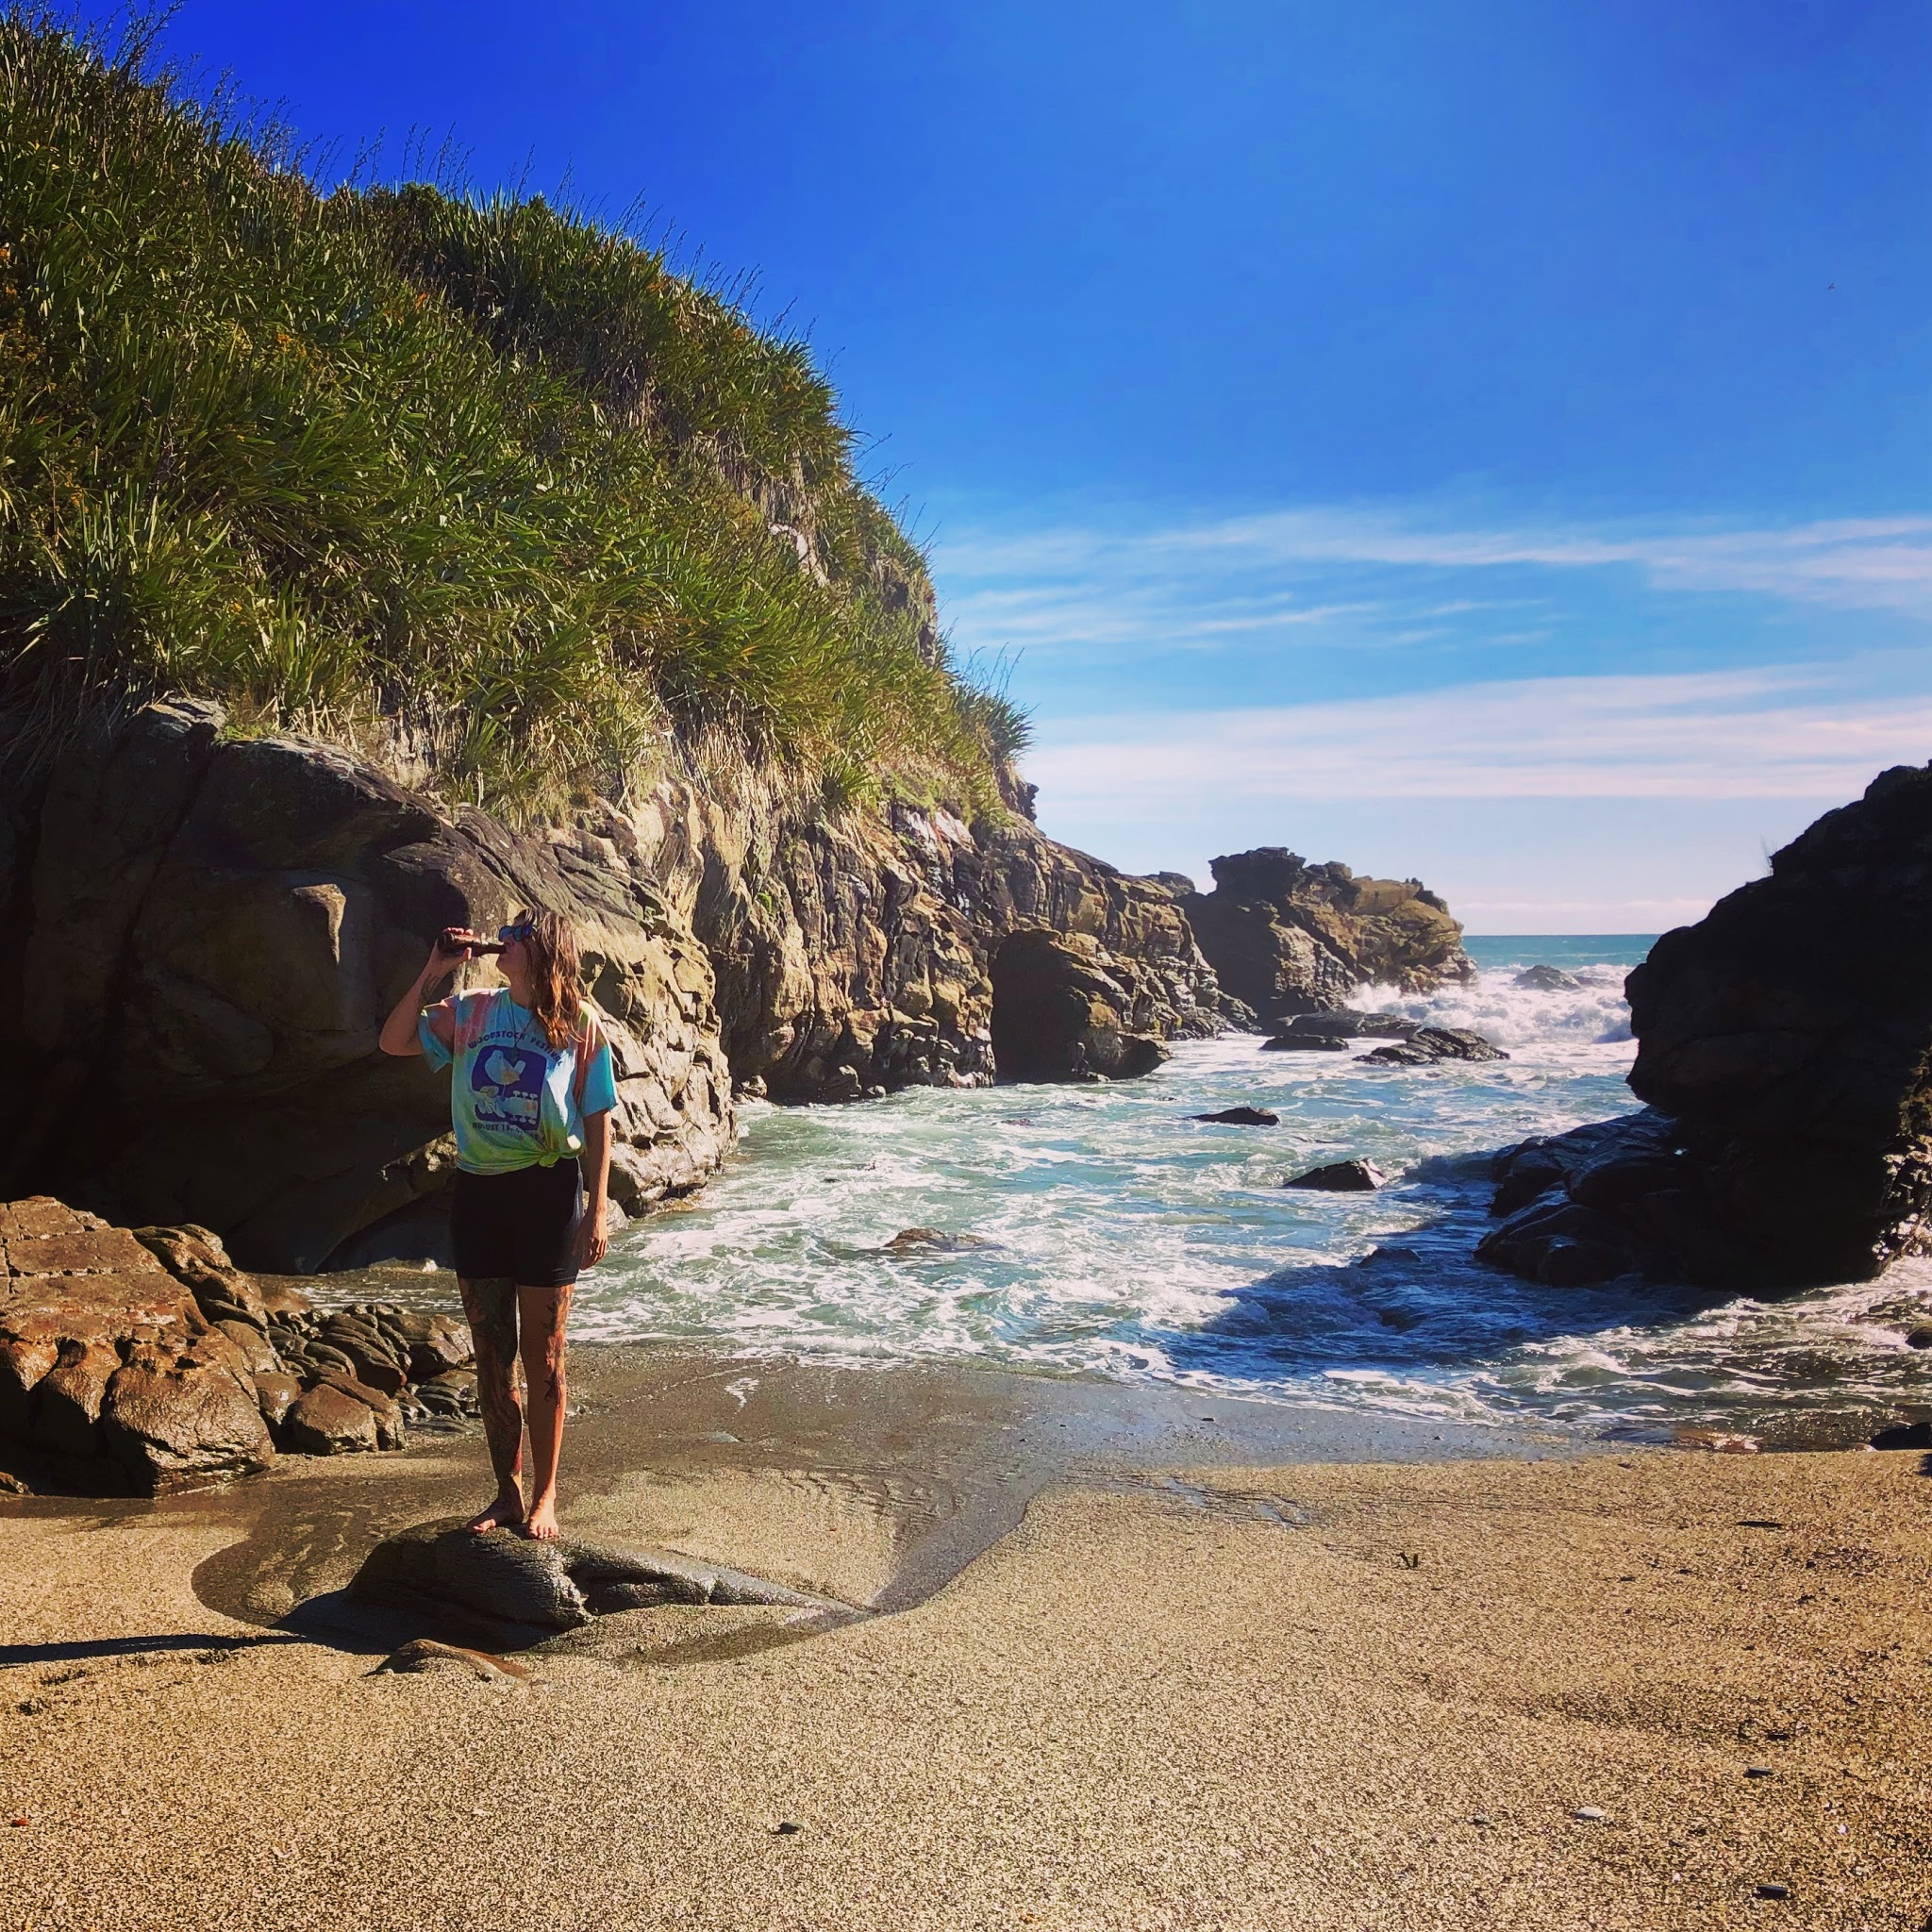 Ellisha Macoretta - Name: Ellisha Instagram: @bnb_excellentadventures Brew: IPA's all day Favourite snack: Trail mix Outdoor activity: CyclingDescription.Ellisha is an adventurous Canadian who is exploring New Zealand by bike, not letting warnings of difficulty stop her from ridin the trails she has dreamt of!